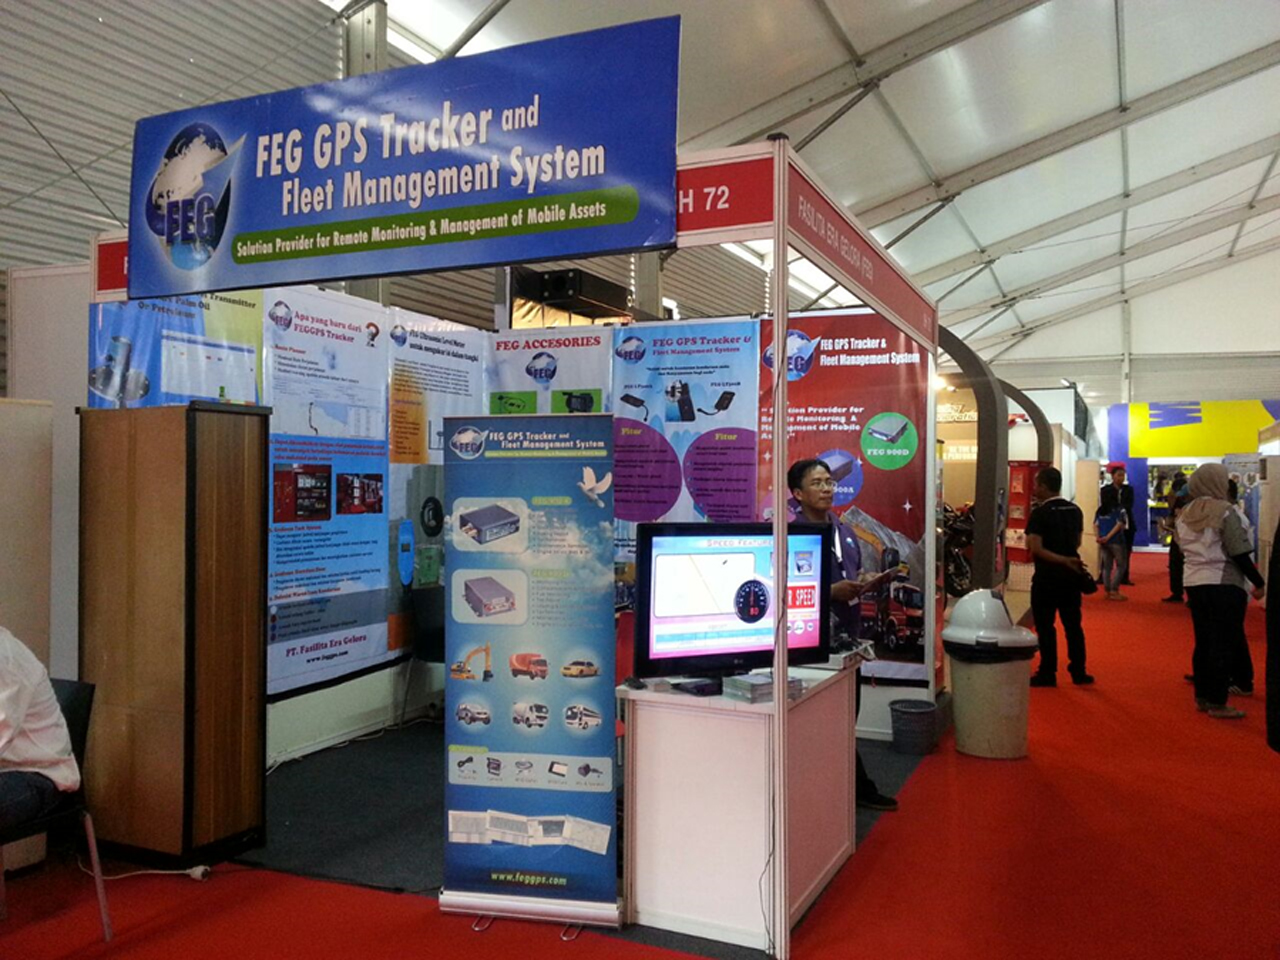 Overview stand of FEG GPS